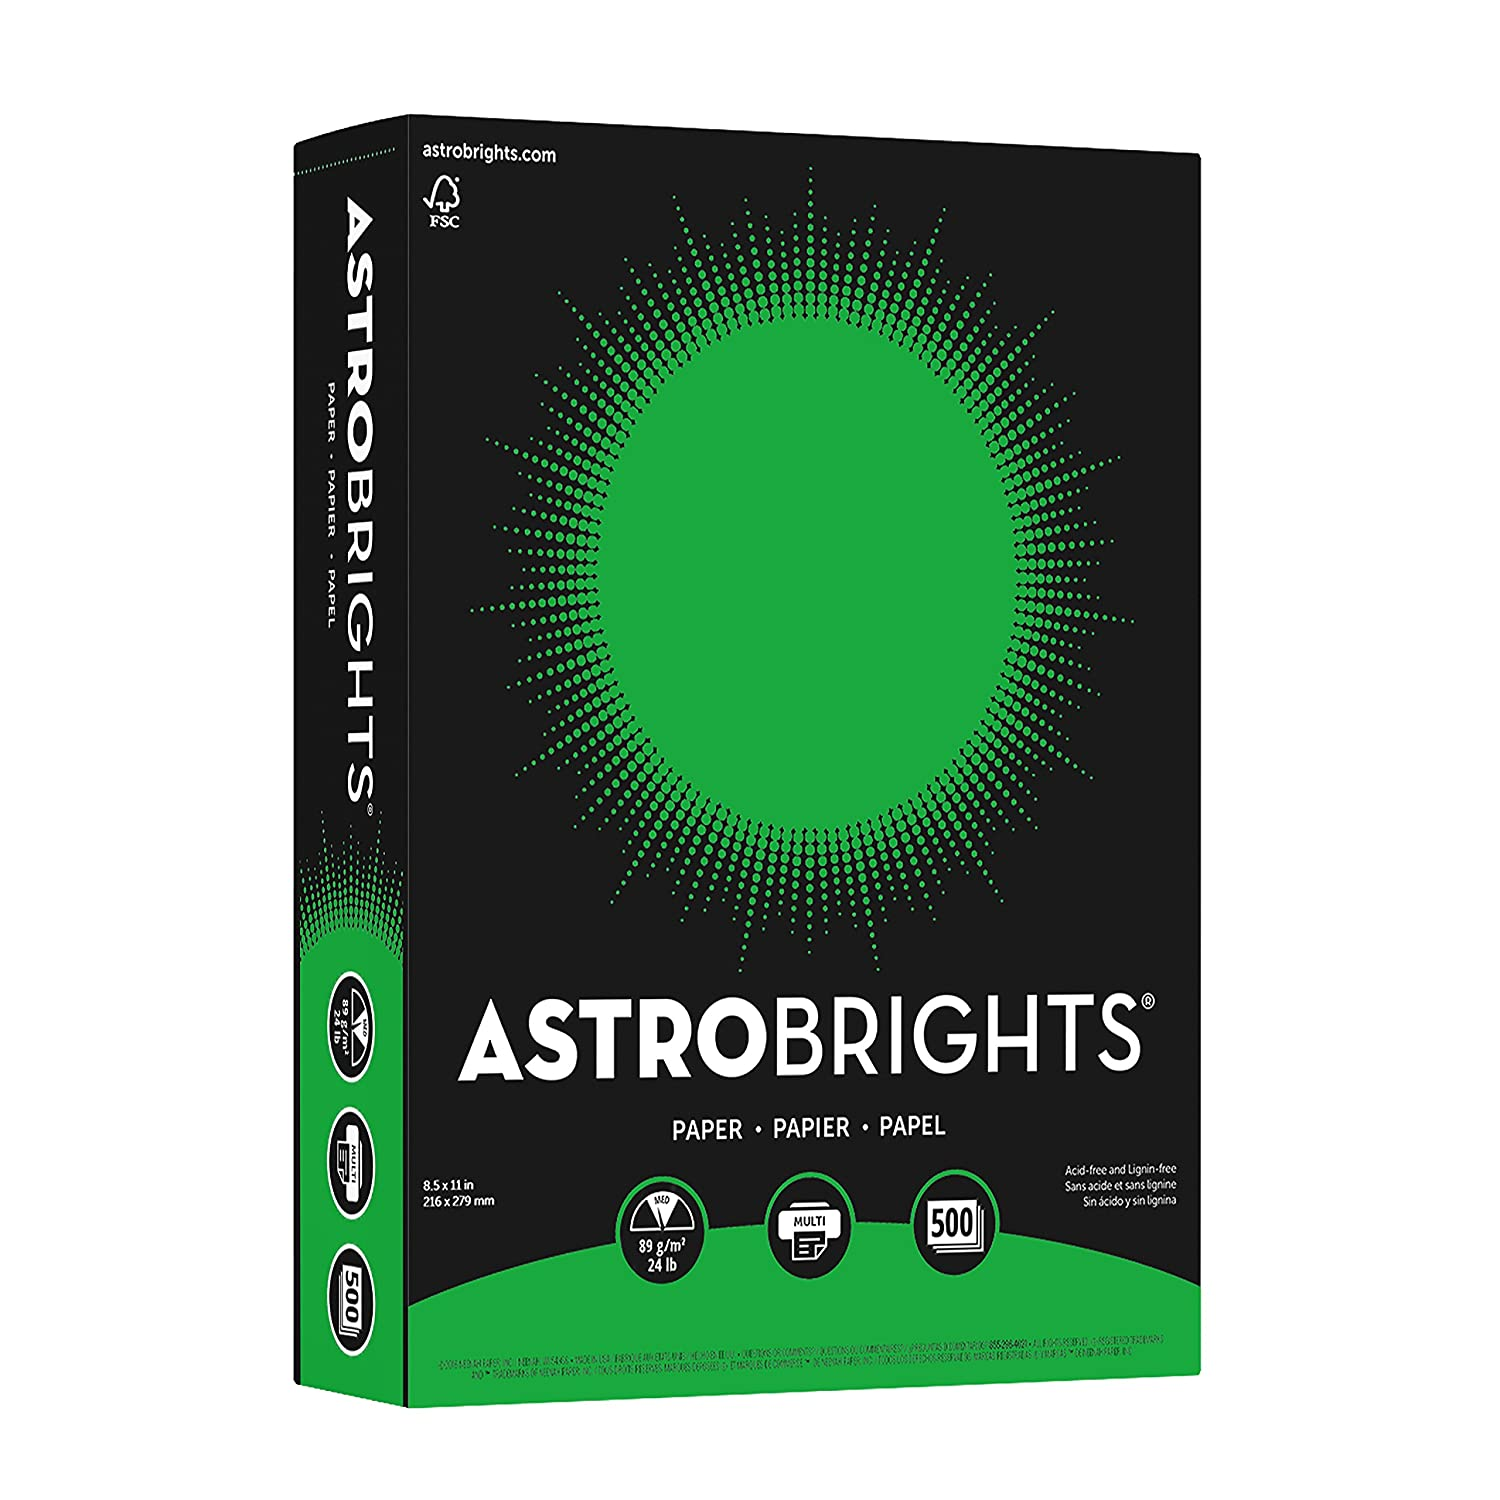 Neenah 21528 Astrobrights Premium Color Paper, 24 lb, 8.5 x 11 Inches, 500 Sheets, Lunar Blue